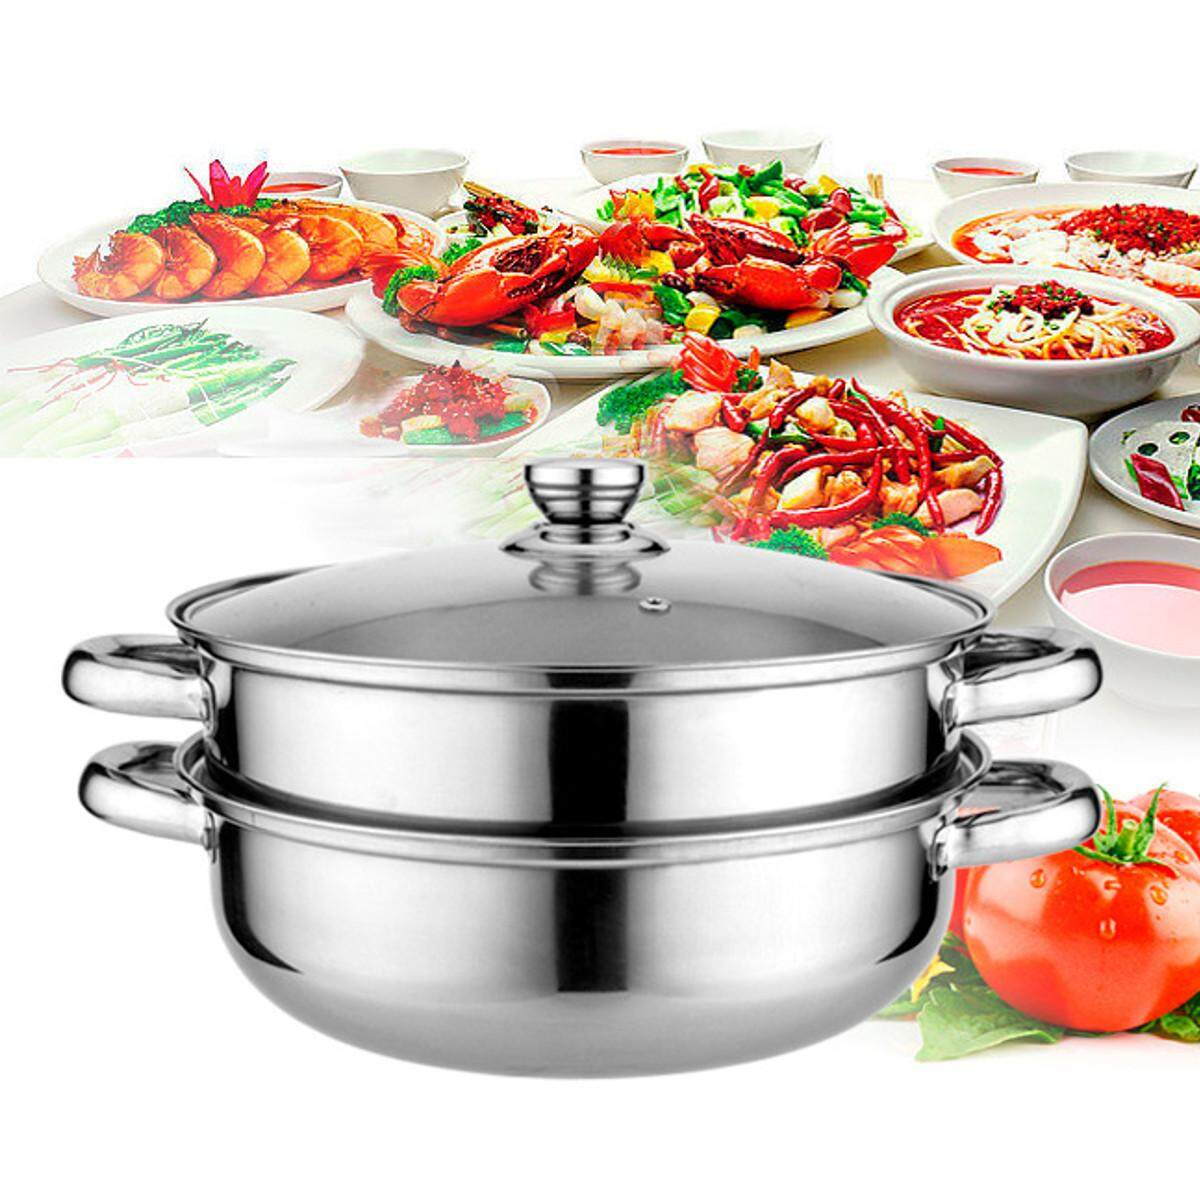 ... Stainless Steel 2 Tier 28cm Steamer Induction Steam Steaming Pot Cookware Set - 4 ...